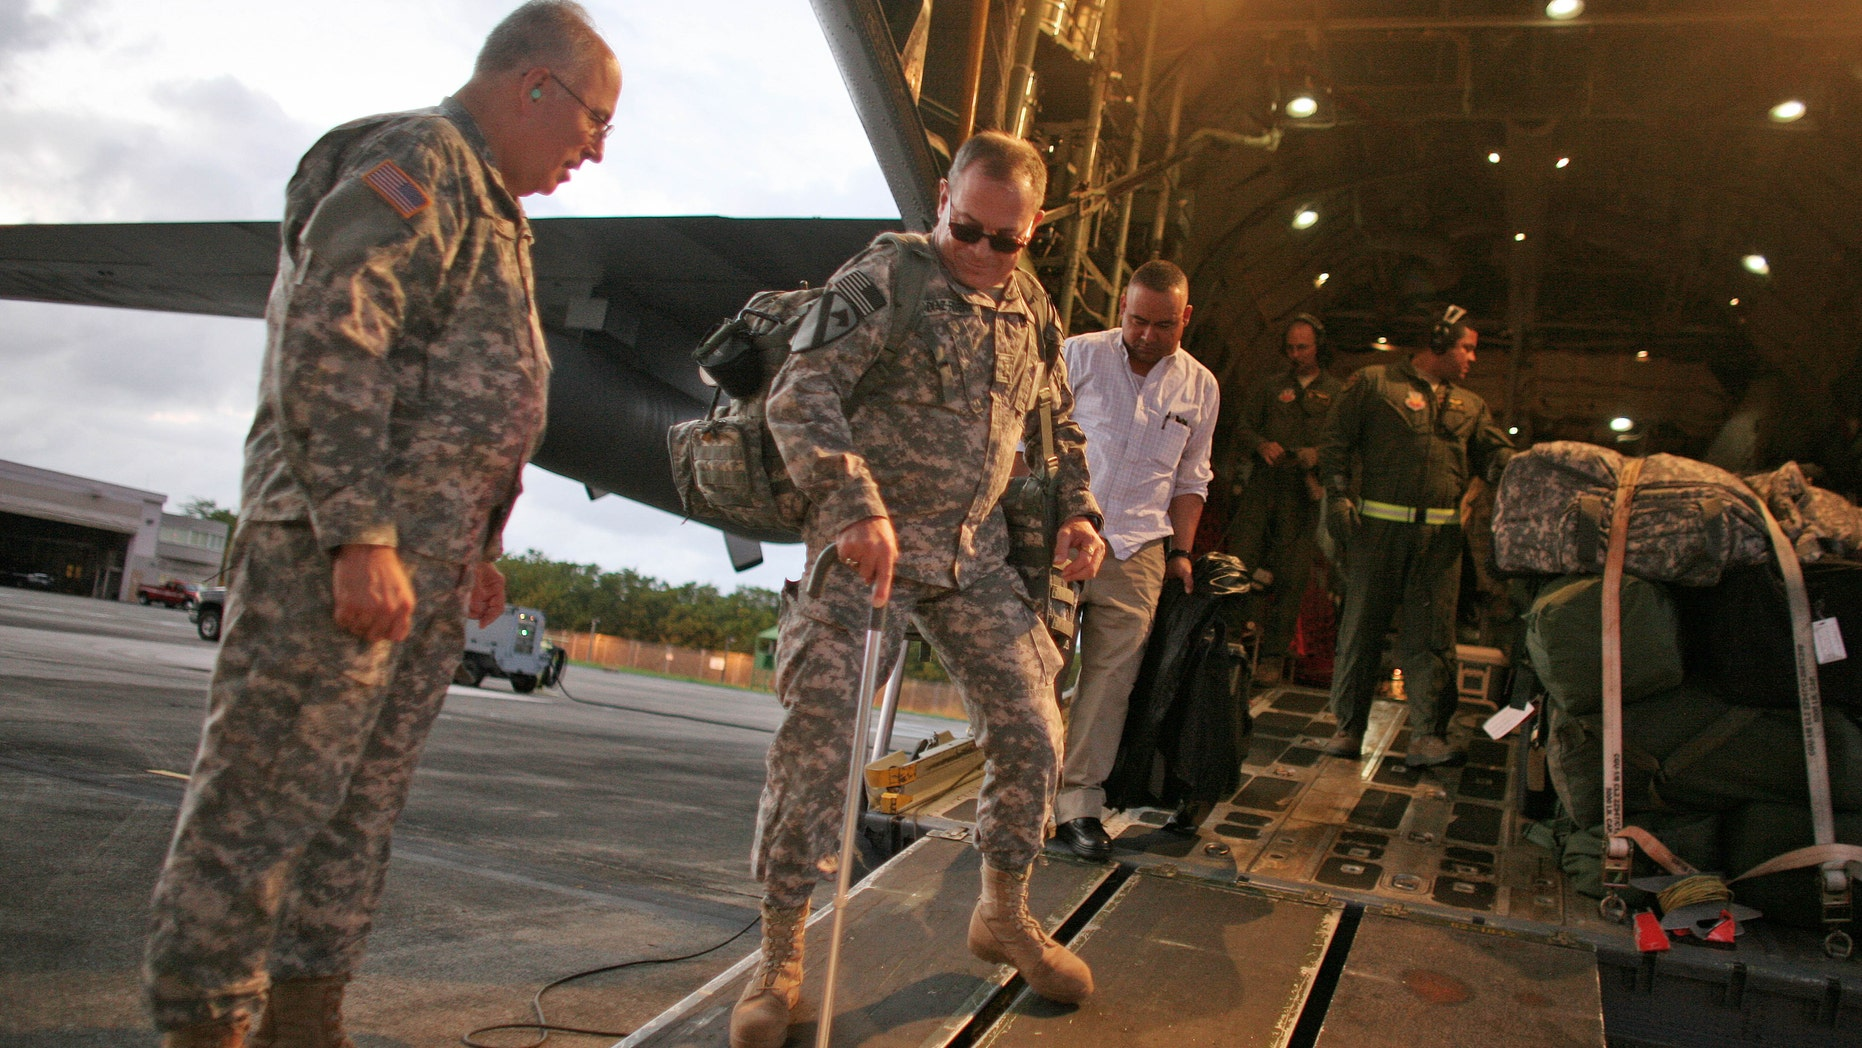 U.S. Army Chief Warrant Officer Diaz-Rivera, center, arrives to San Juan, Puerto Rico, Tuesday, Dec. 20, 2011. Puerto Rico National Guard officials say they flew home some 20 soldiers for a short break from their medical treatment. Maj. Gen. Antonio Vicens says some time at home with their families will help them recover from wounds sustained in Afghanistan, Iraq and elsewhere. (AP Photo/Ricardo Arduengo)